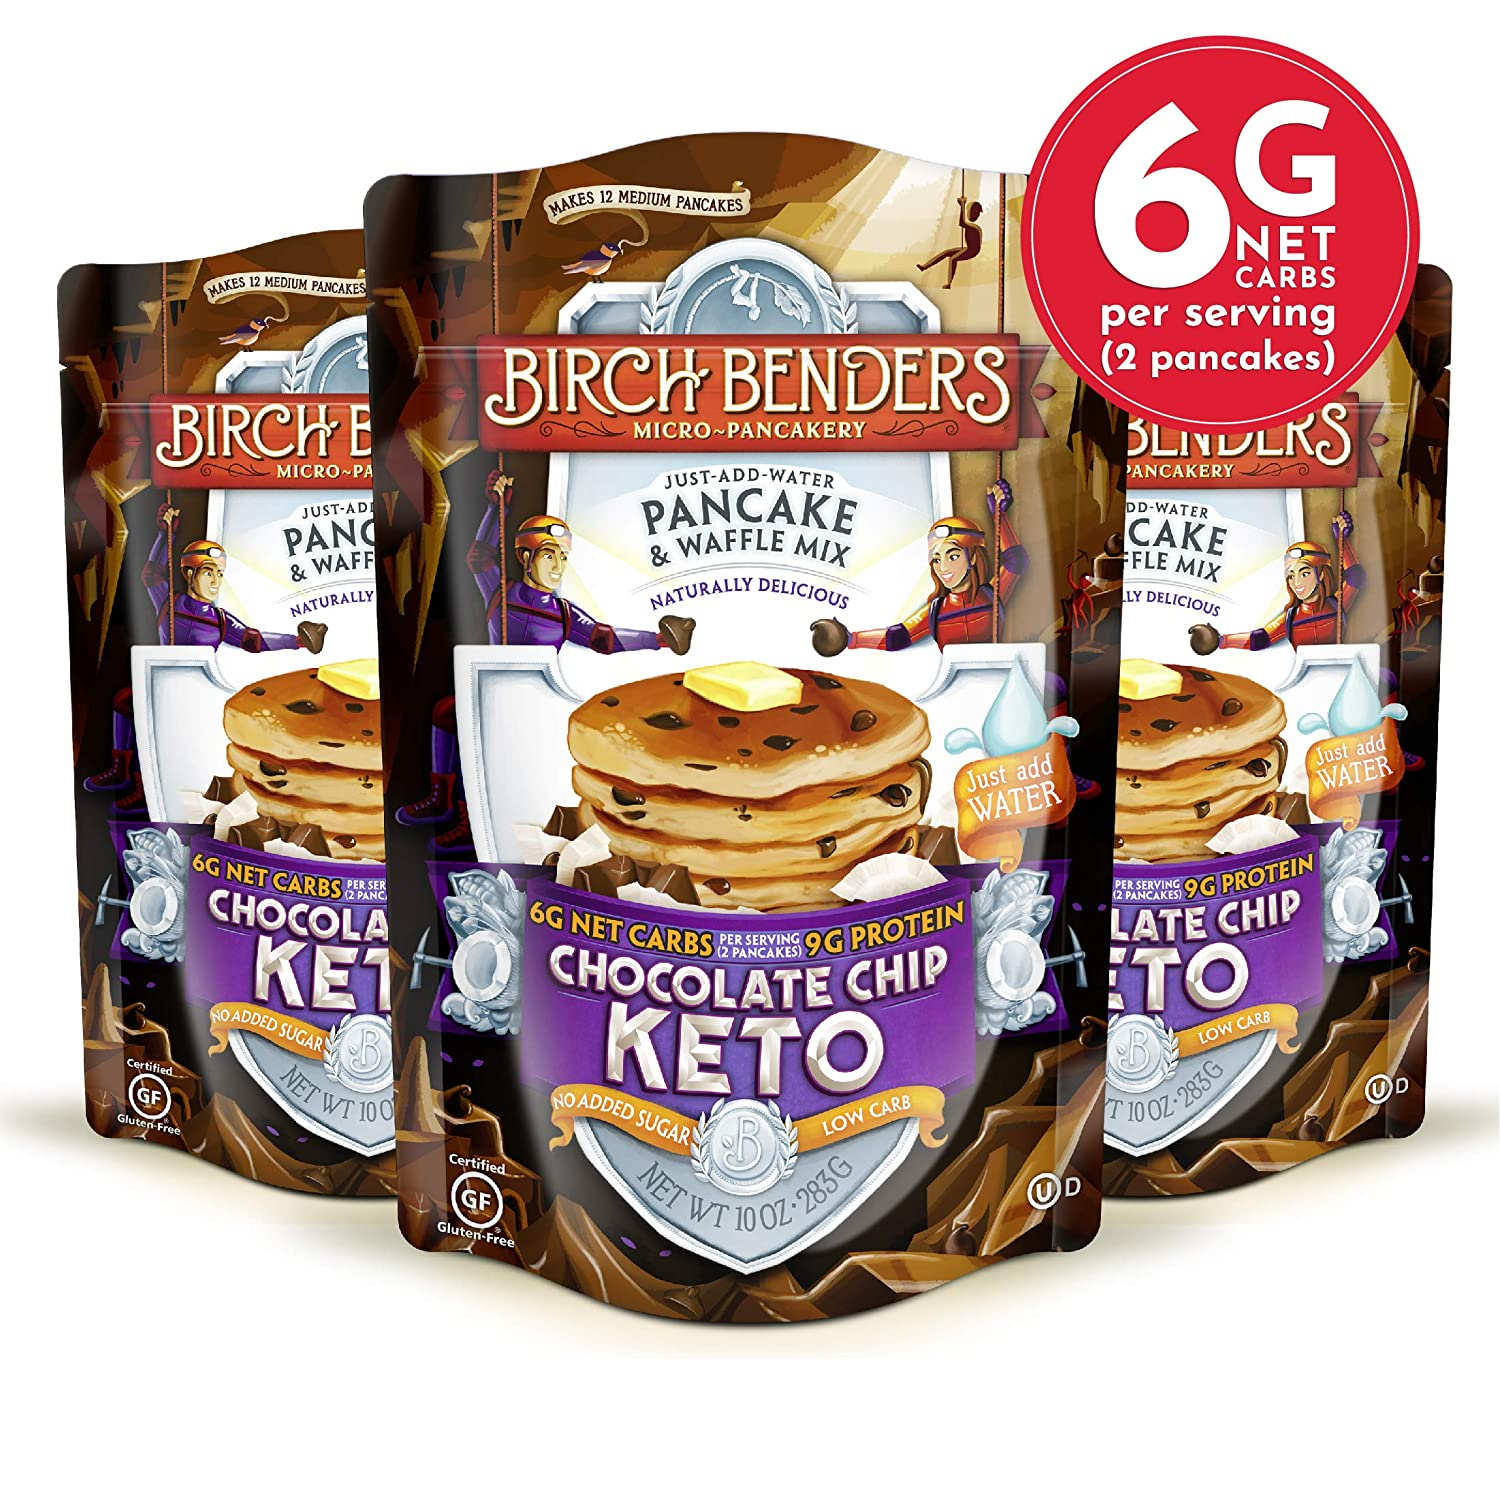 Birch Benders Keto Chocolate Chip Pancake & Waffle Mix with Almond/Coconut & Cassava Flour, 3 Count